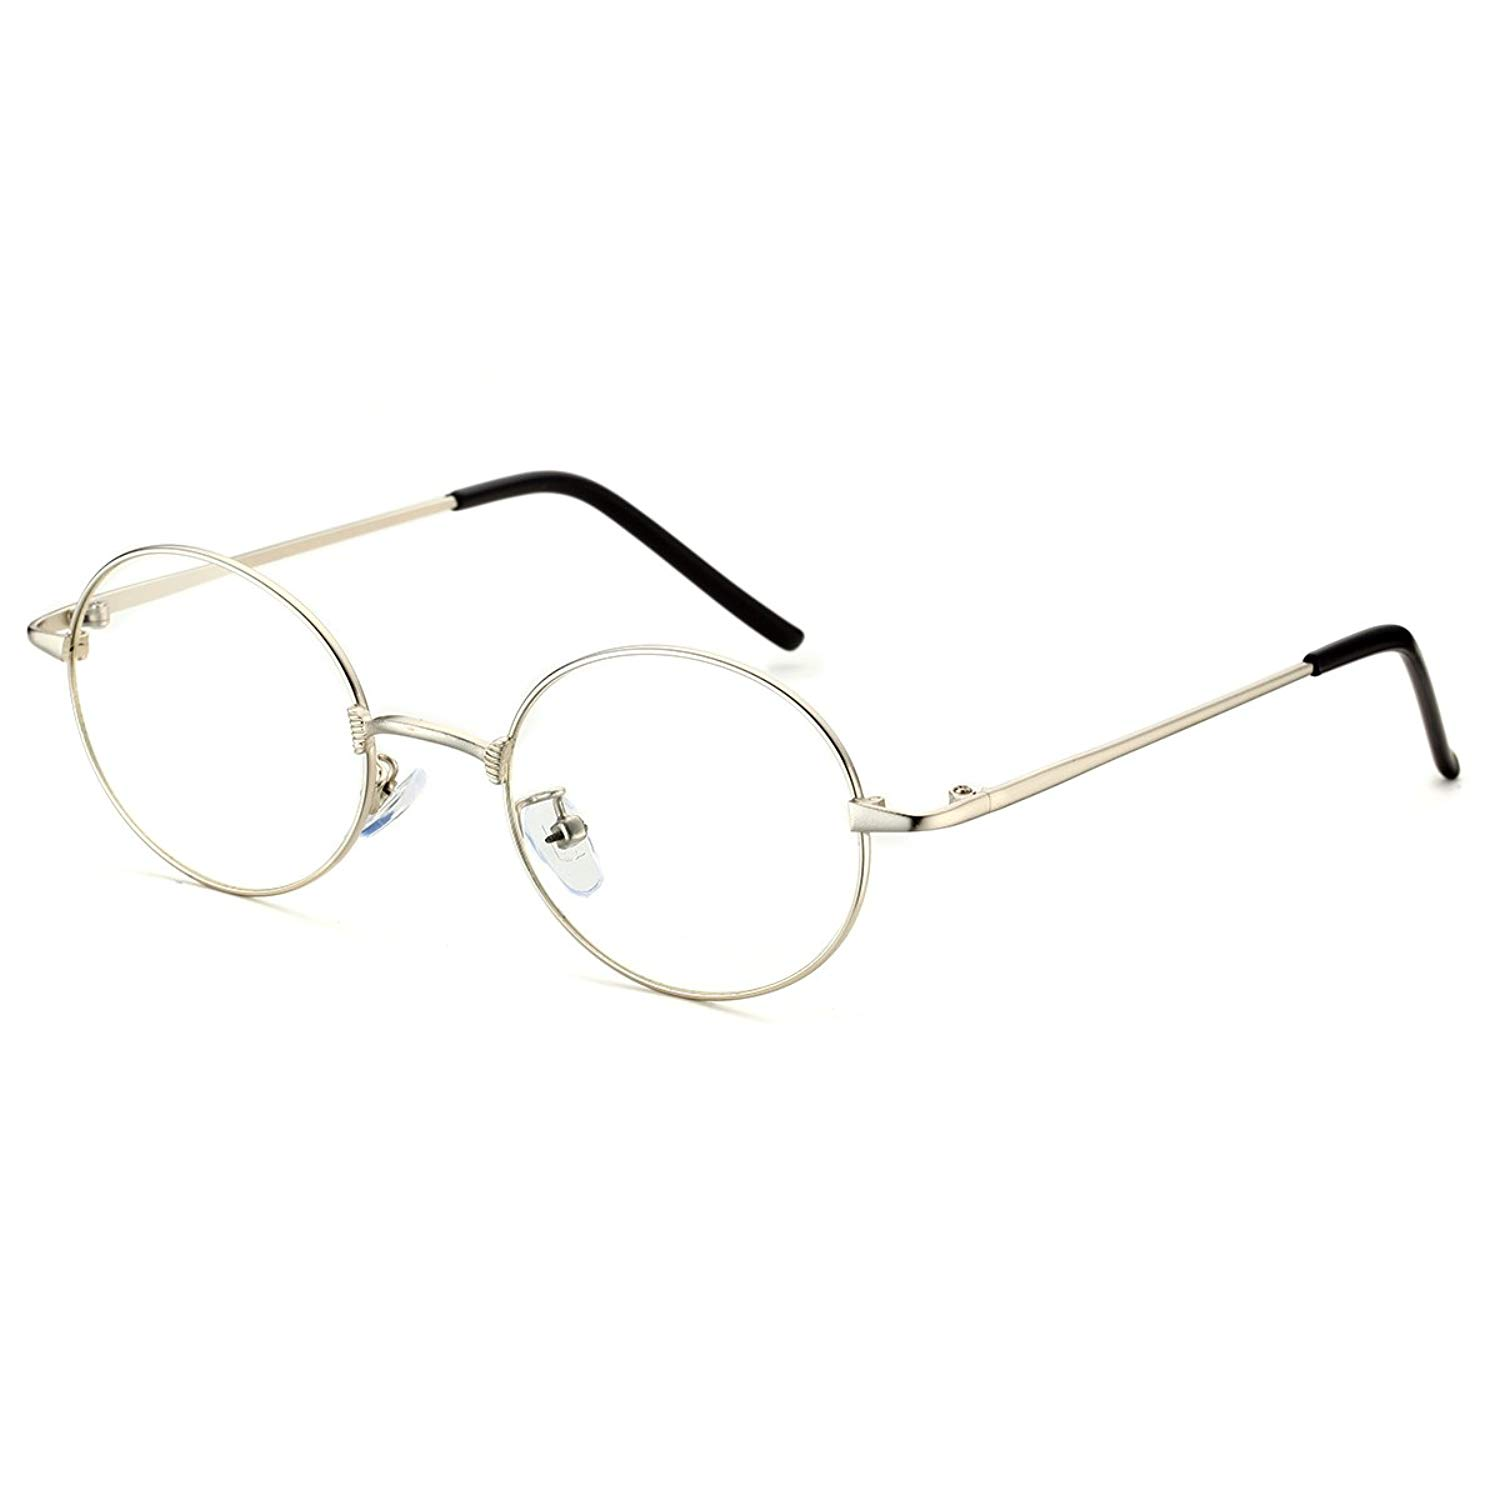 93a74382963 Get Quotations · PenSee Optical Metal Round Oval Circle Eye Glasses Eyewear  Frames